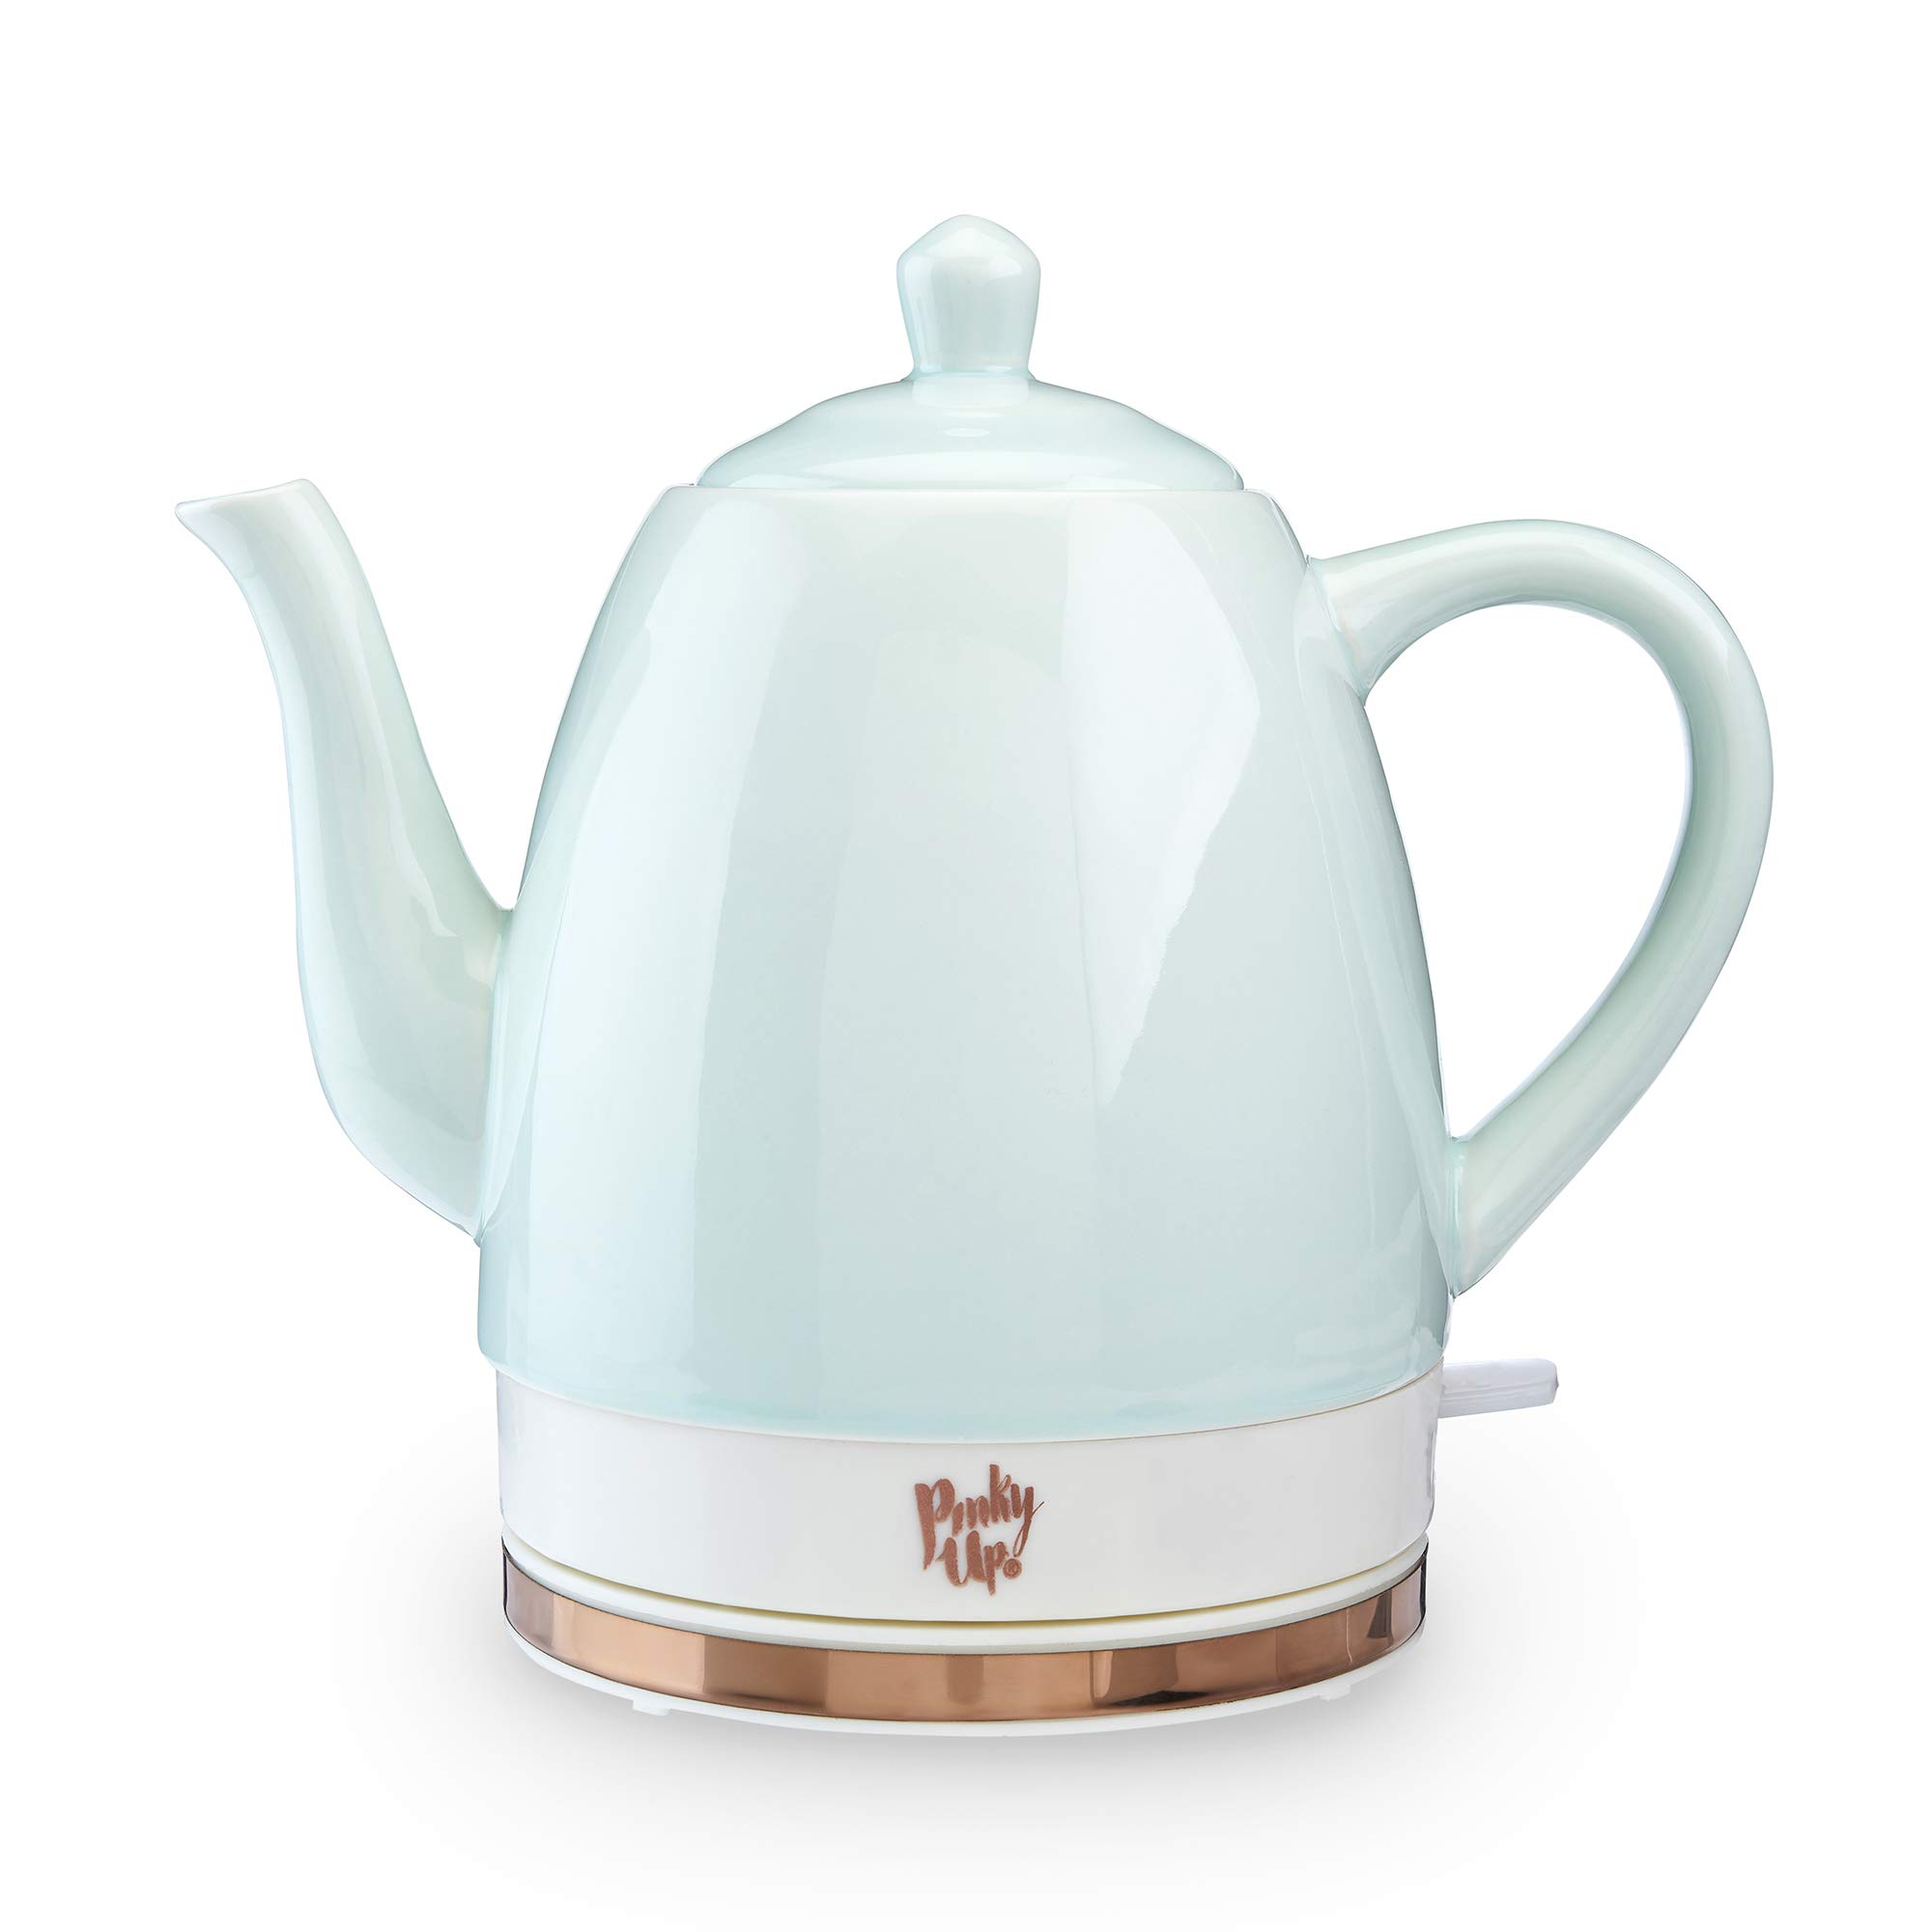 Pinky Up Nooelle Ceramic, Coffee, and Glassware Electric Tea Kettle, One Size, Light Green